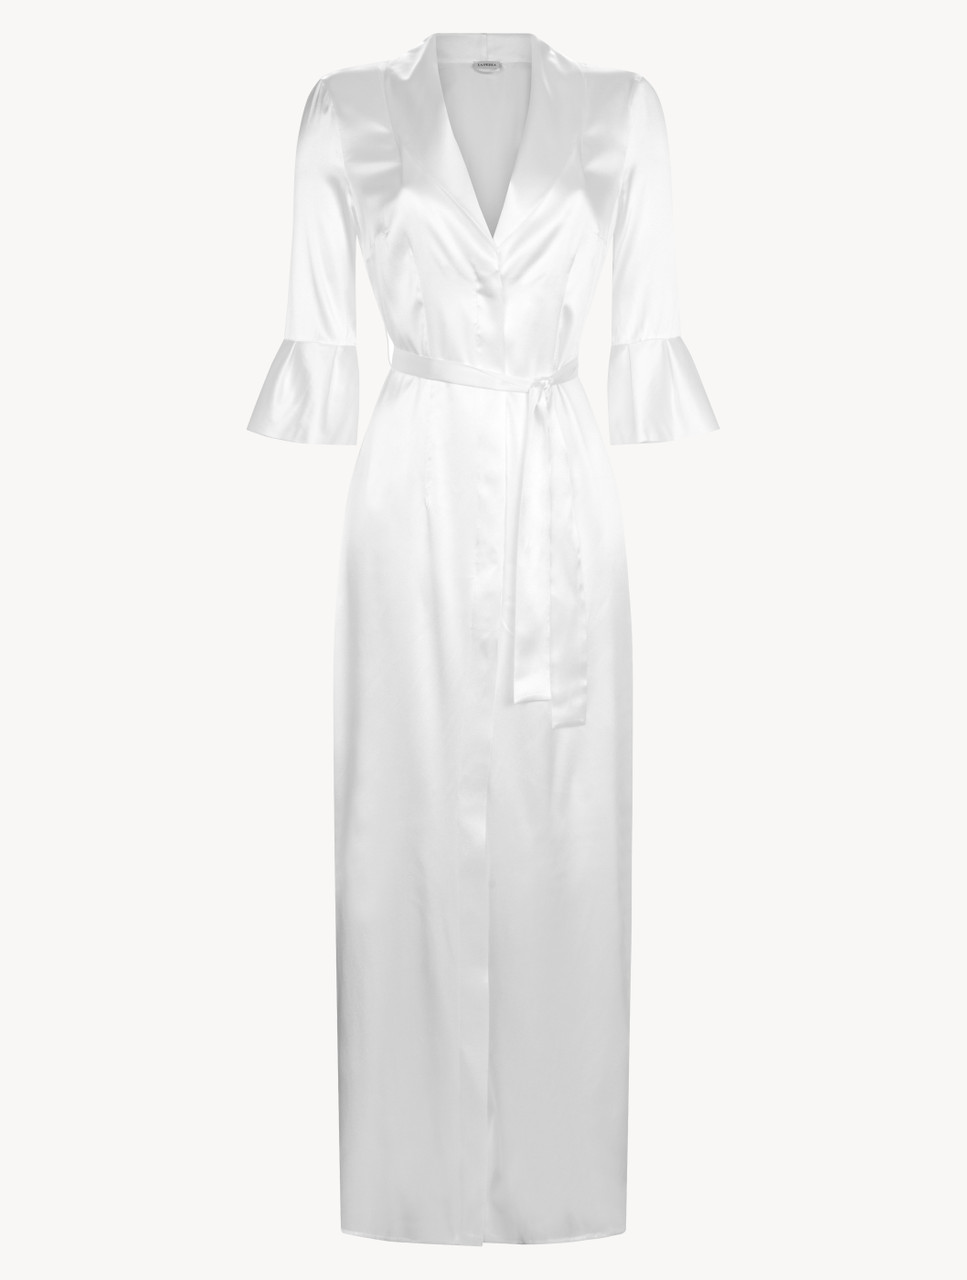 Off White Long Silk Belted Robe La Perla Uk